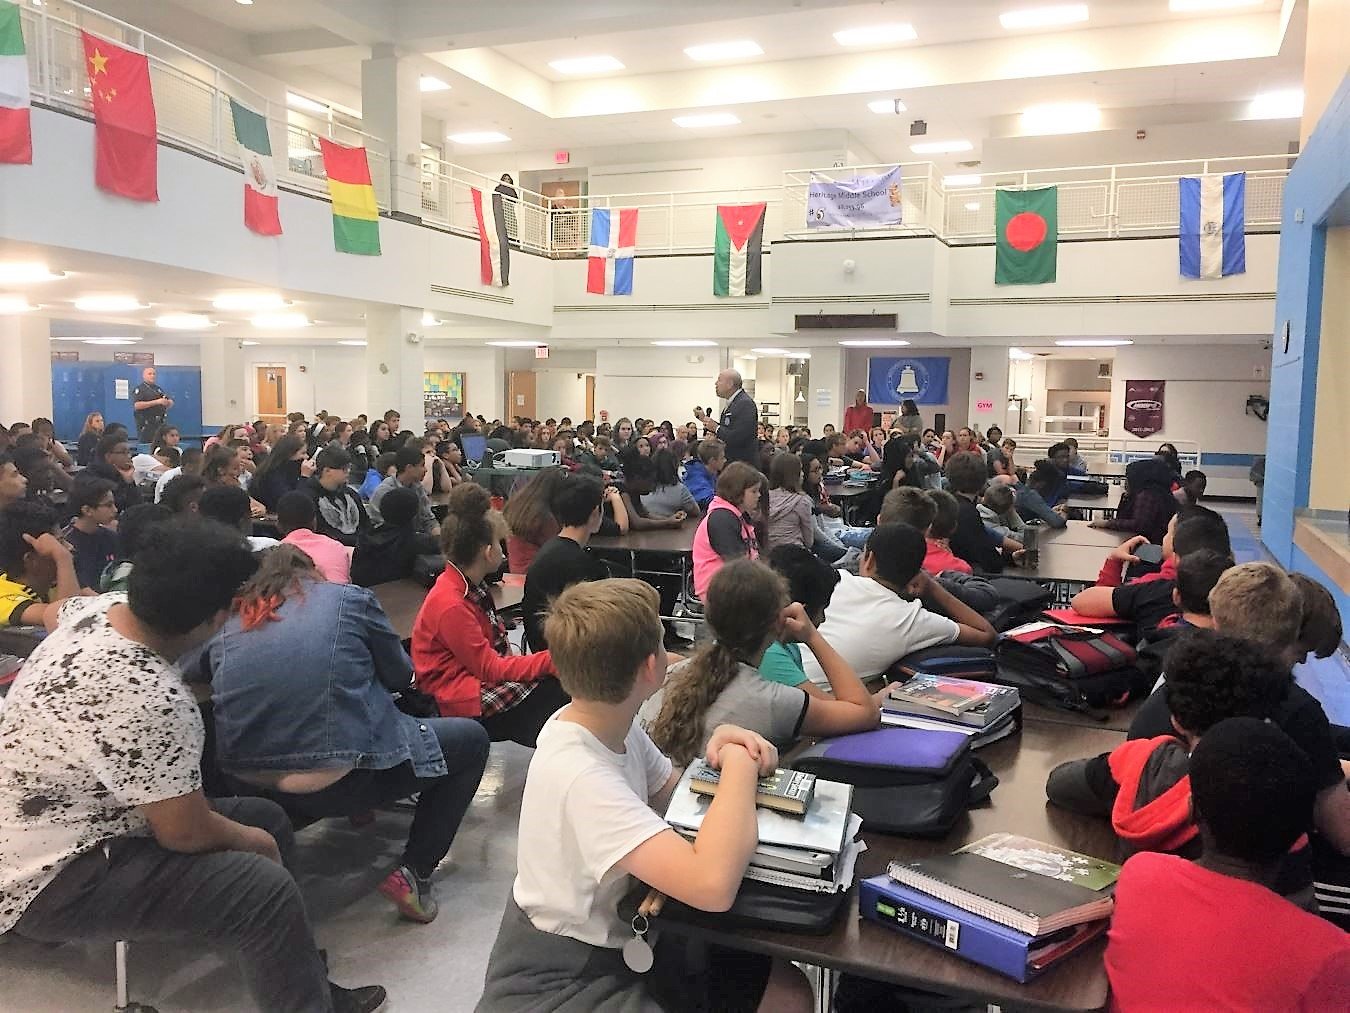 Students listen intently as Stephen Smith offers tips about cyber safety.